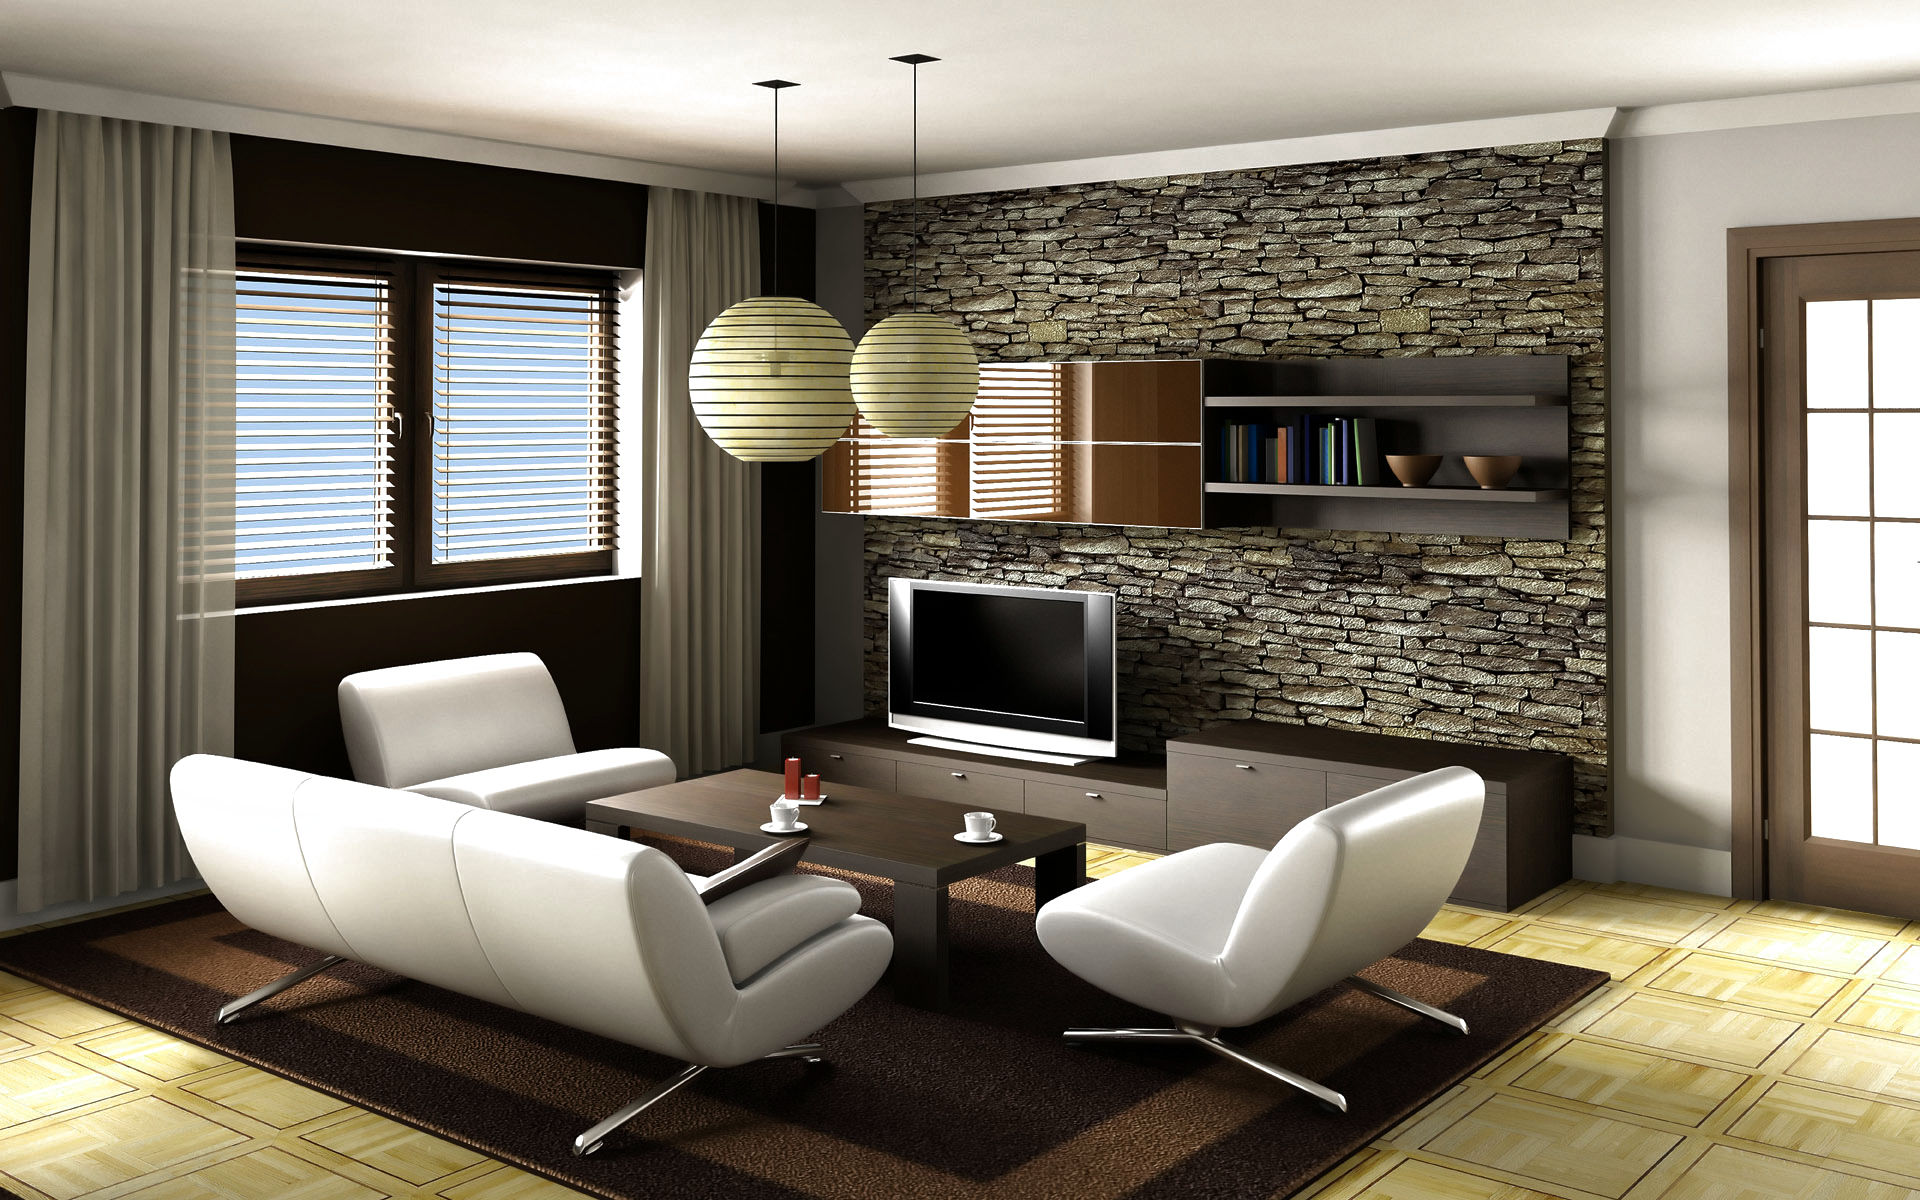 16 modern living room furniture ideas design hgnv com Room builder